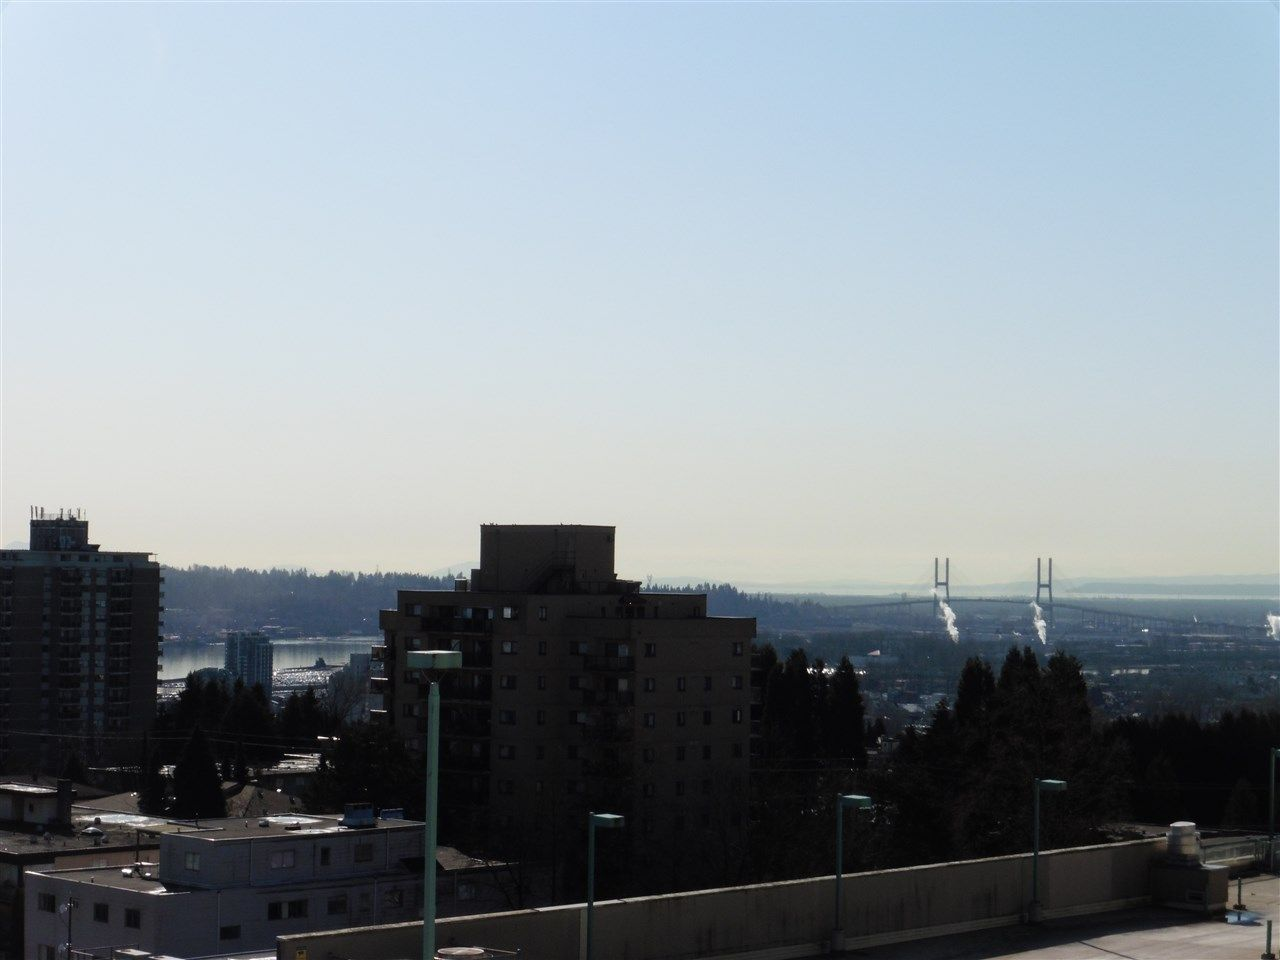 """Photo 6: Photos: 705 728 PRINCESS Street in New Westminster: Uptown NW Condo for sale in """"PRINCESS TOWER"""" : MLS®# R2437425"""